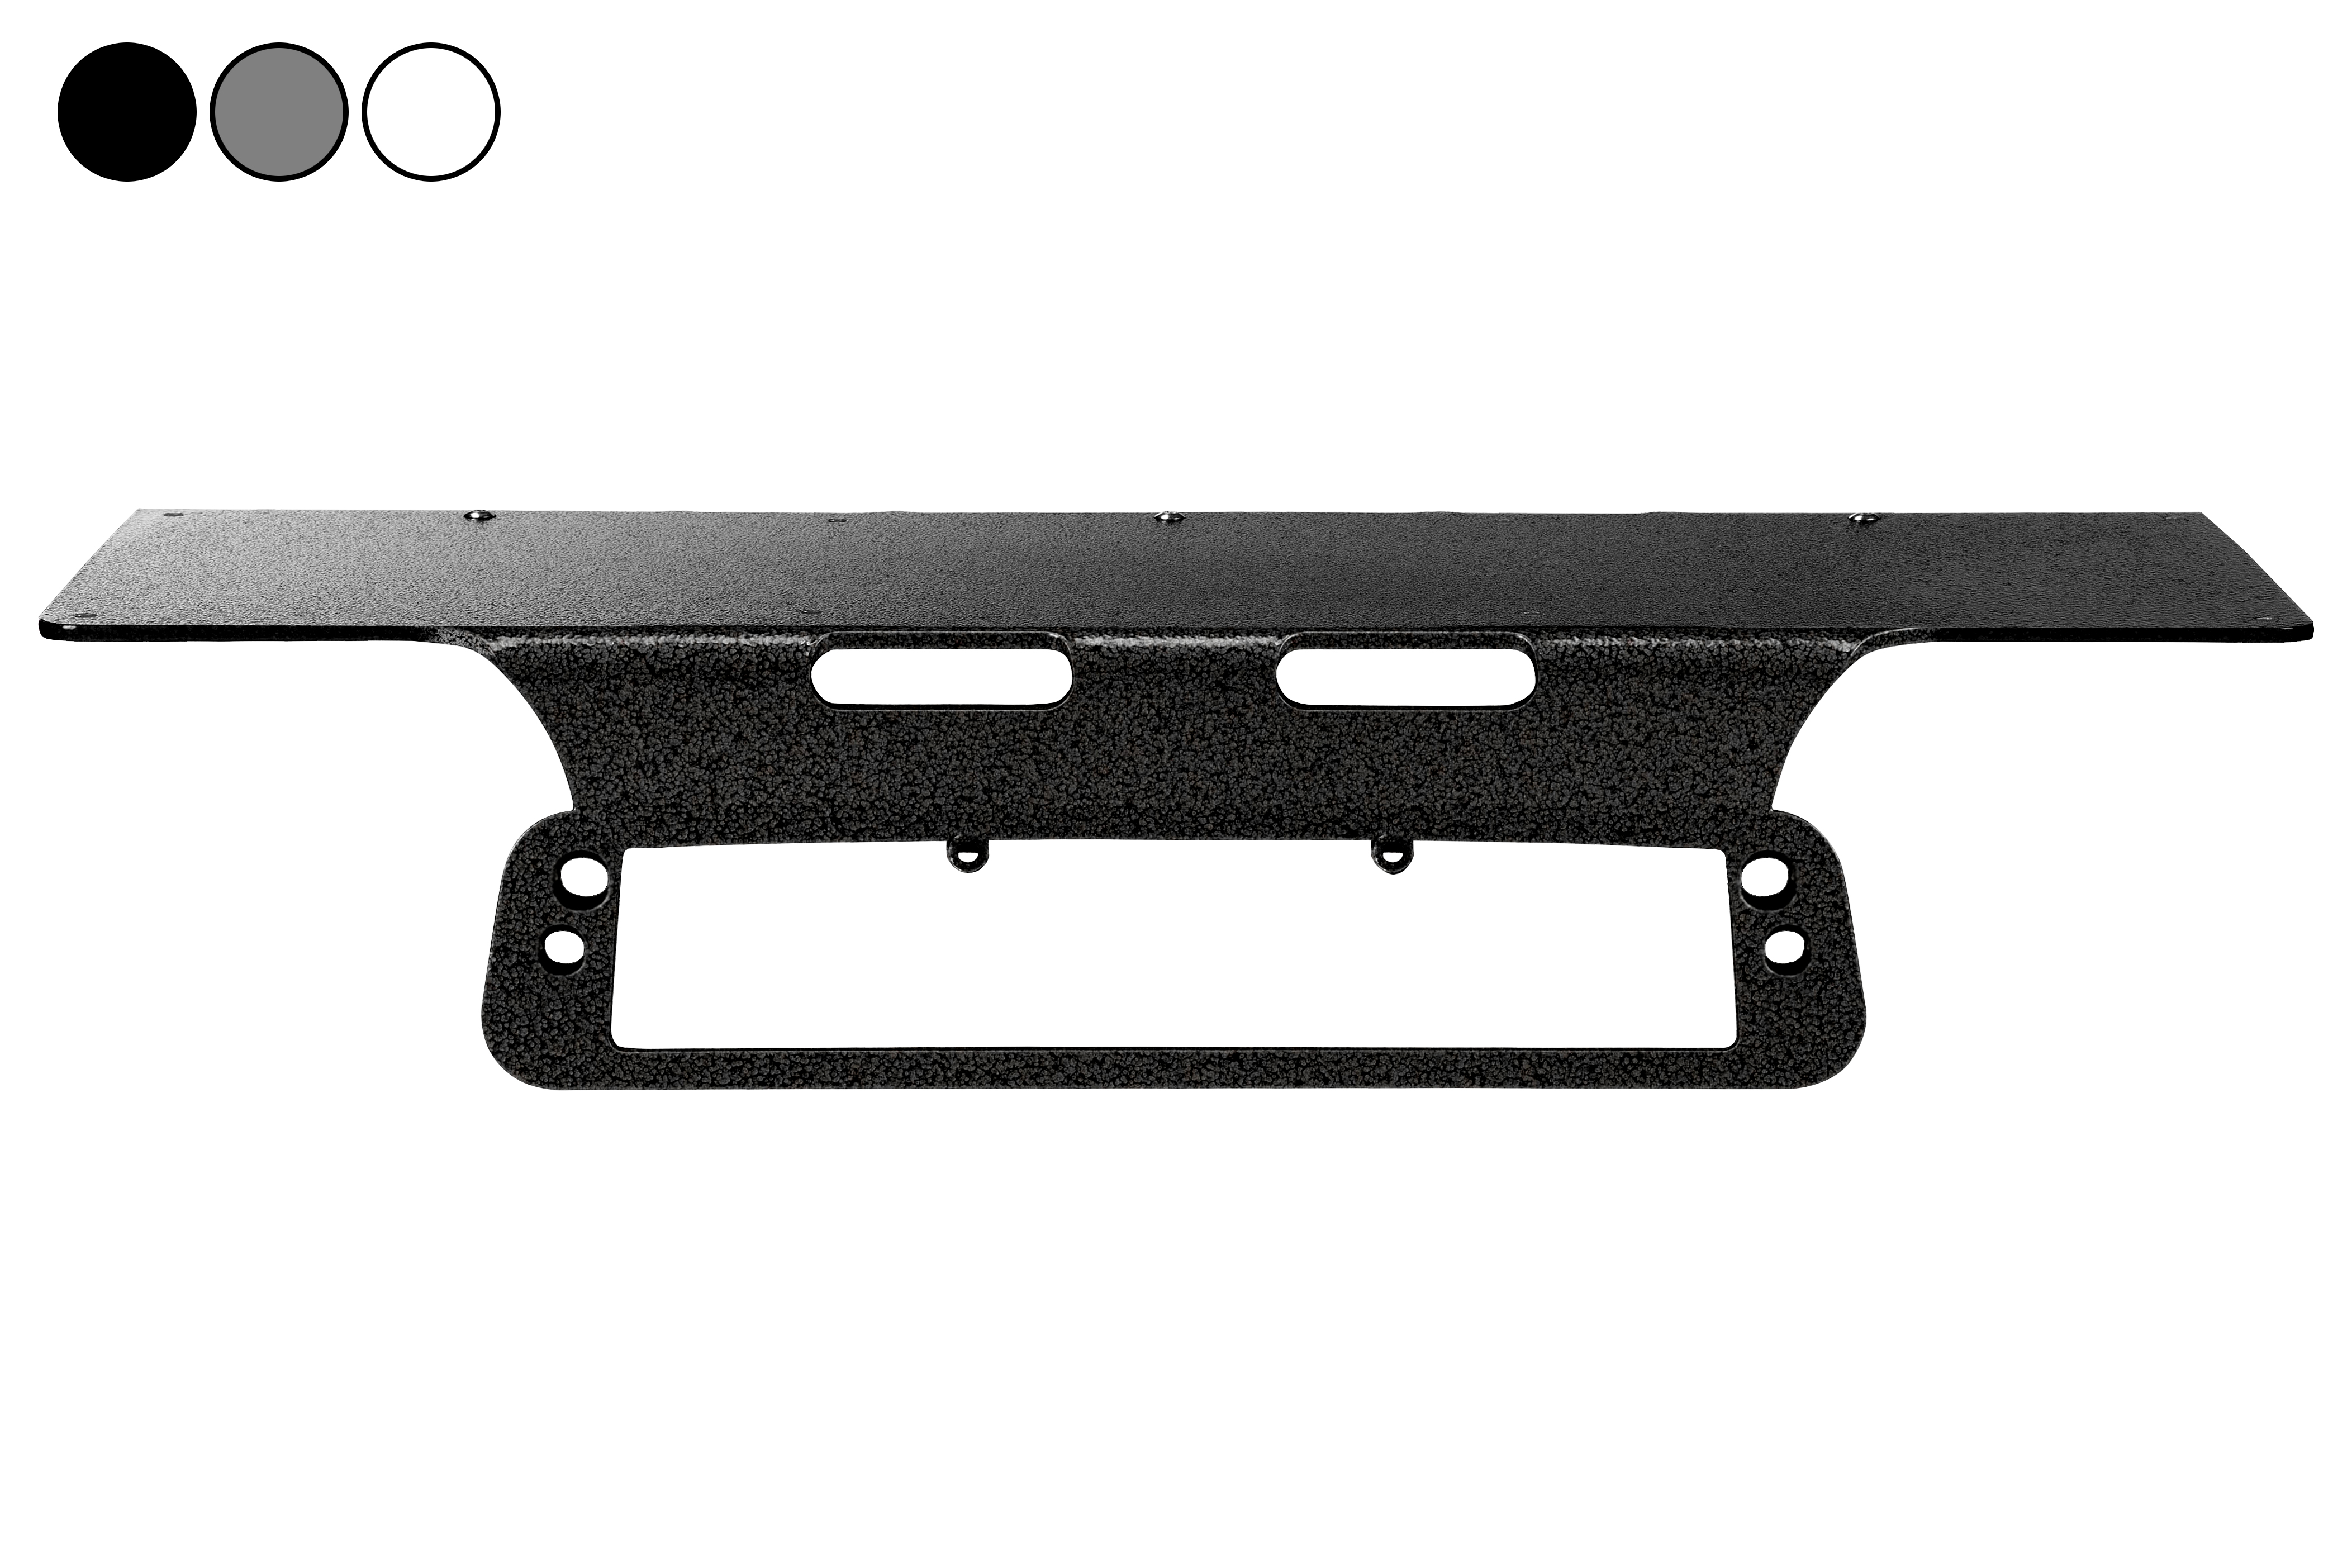 2019 Dodge Ram 1500 Permanent, No-Drill Mounting Plate